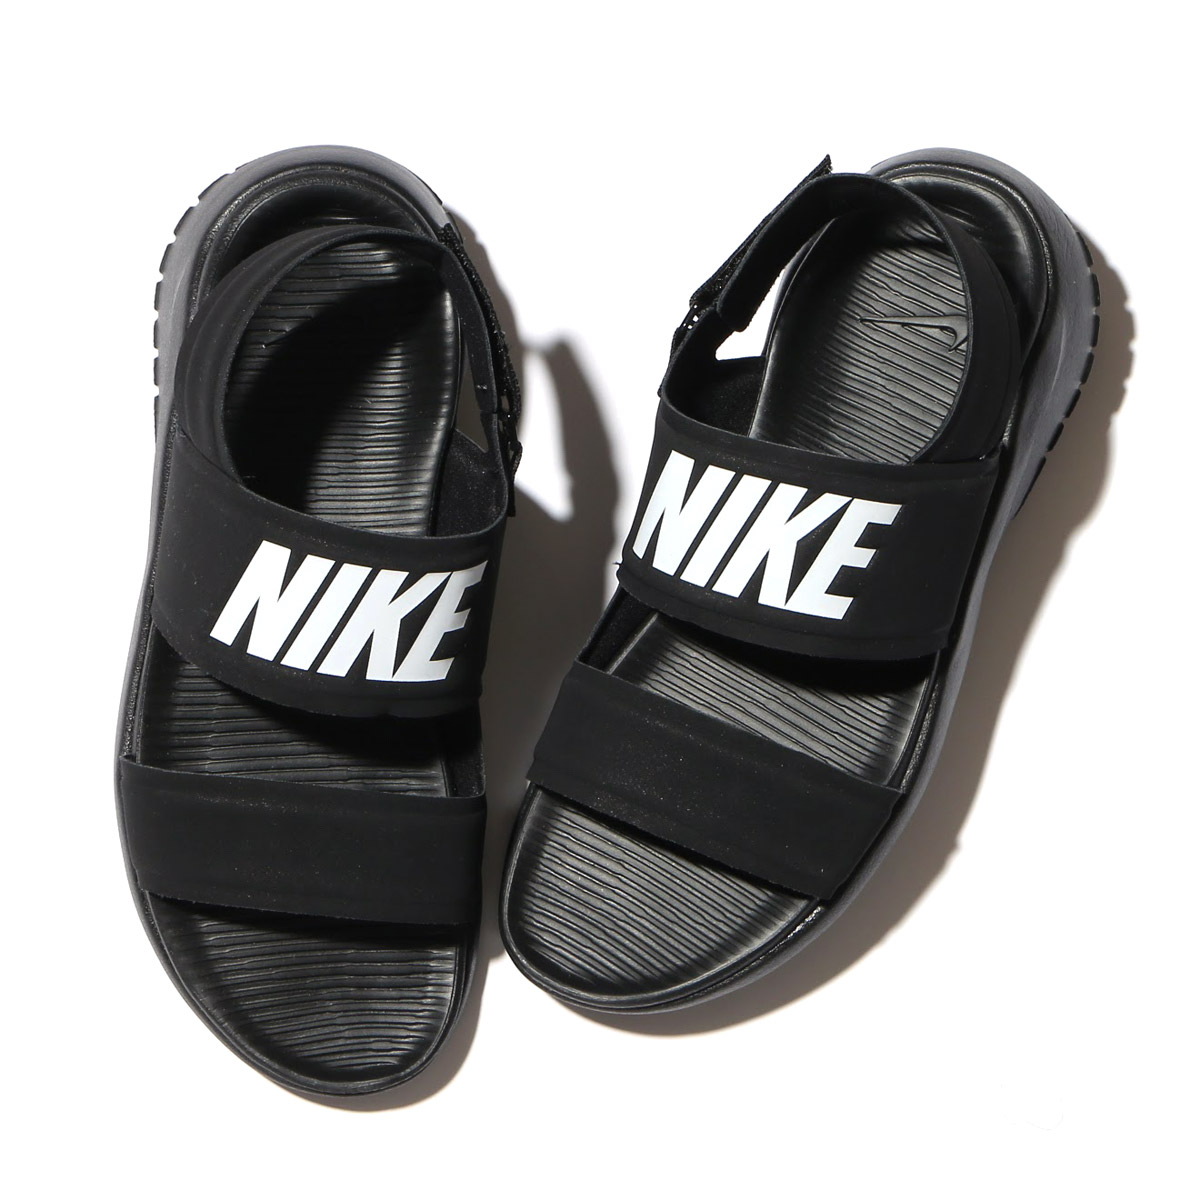 ec3c15bdc4ee3 NIKE WMNS TANJUN SANDAL (Nike women tongue Jun sandals) BLACK WHITE-BLACK  17SU-I